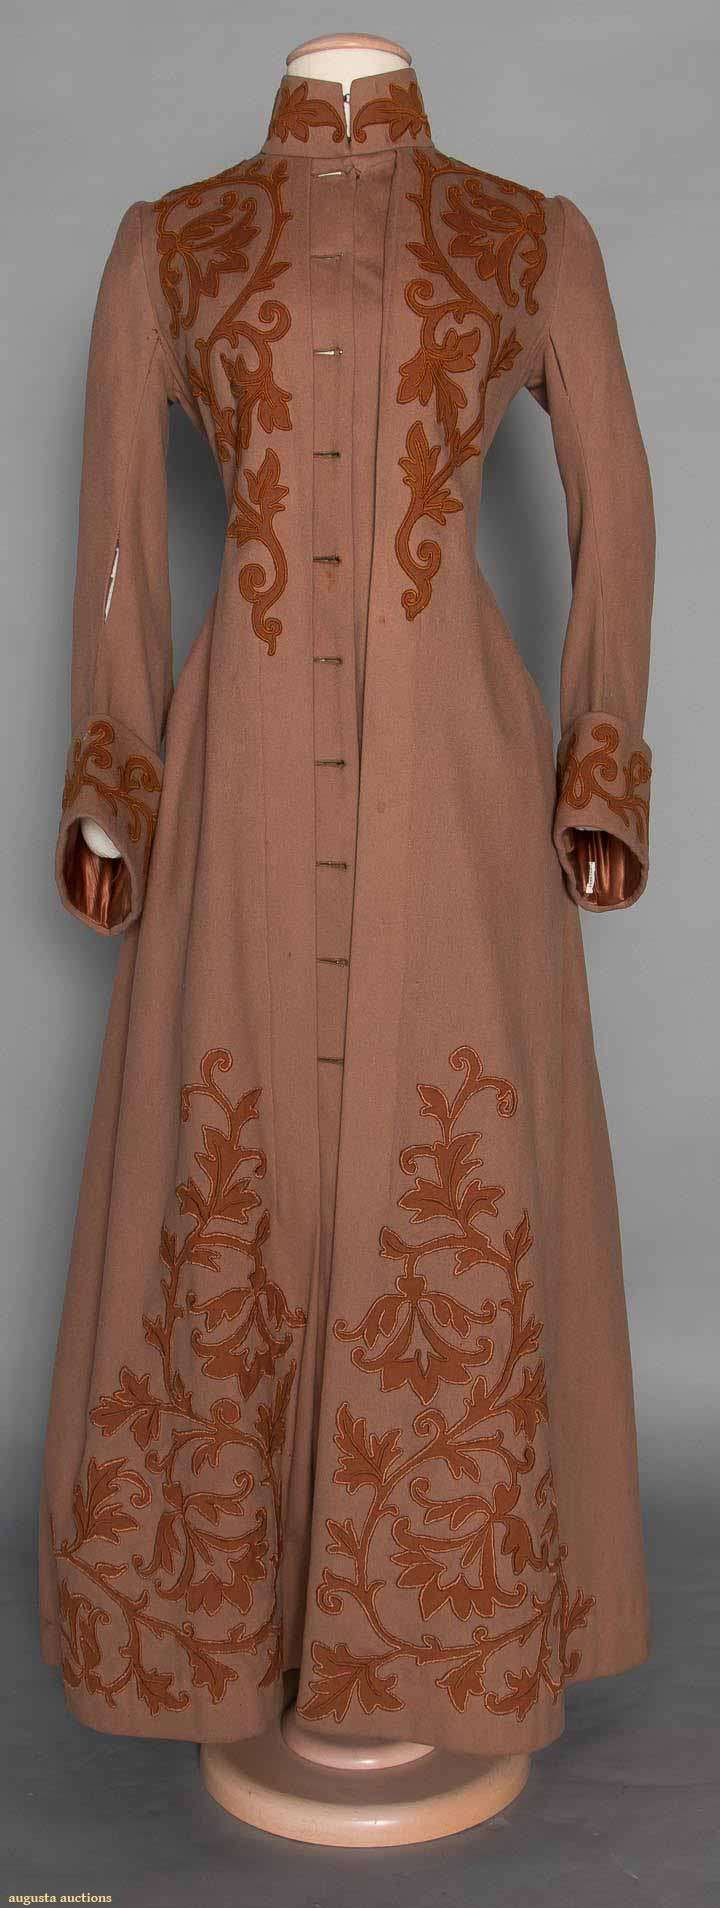 Appliquéd Wool Bustle Coat, C. 1888. For upcoming vintage and antique fashion and textile auction.